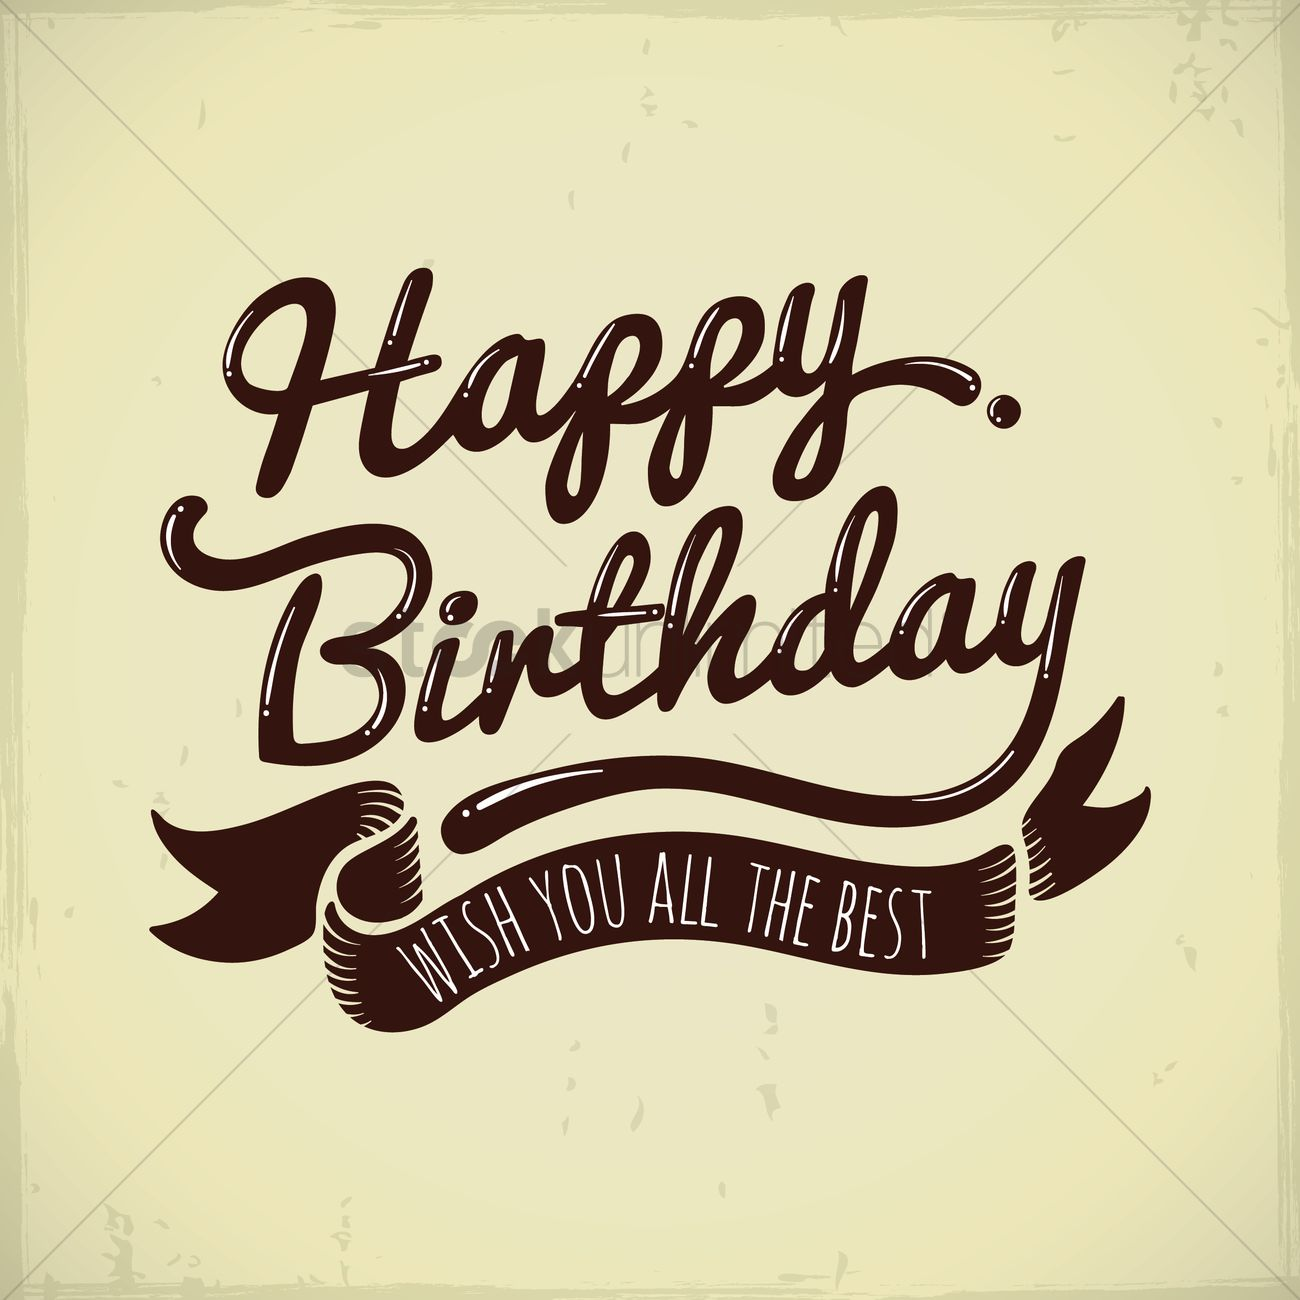 Happy birthday greeting vector image 1811330 stockunlimited happy birthday greeting vector graphic m4hsunfo